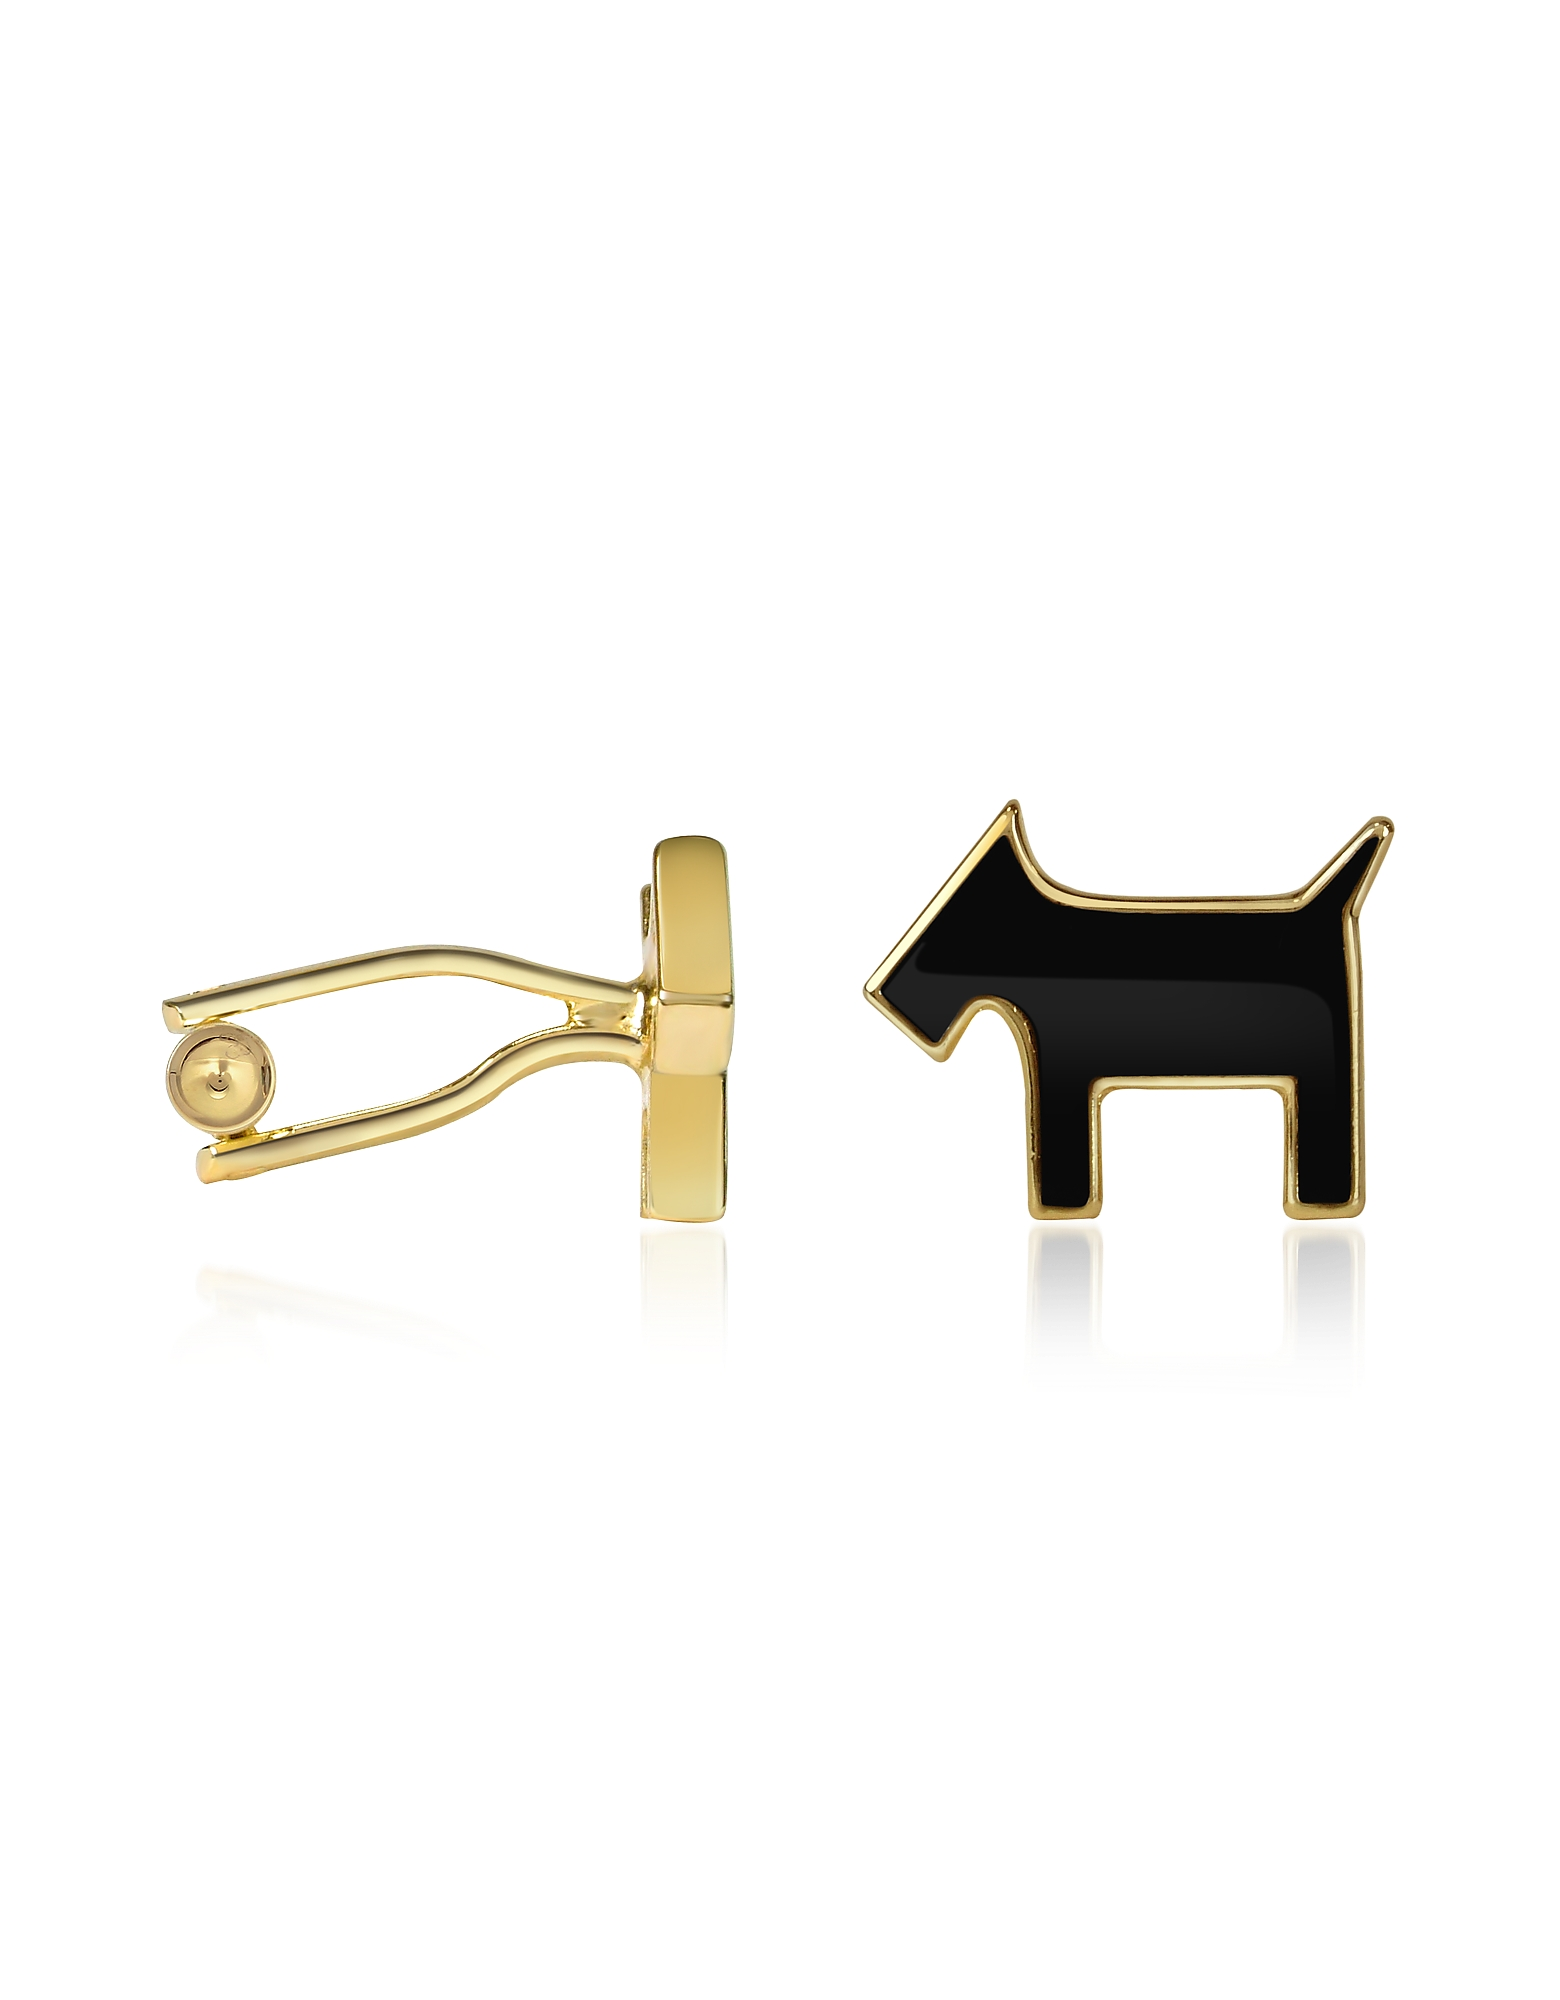 Image of AZ Collection Designer Cufflinks, Scottie Enamel Gold Plated Cuff Links